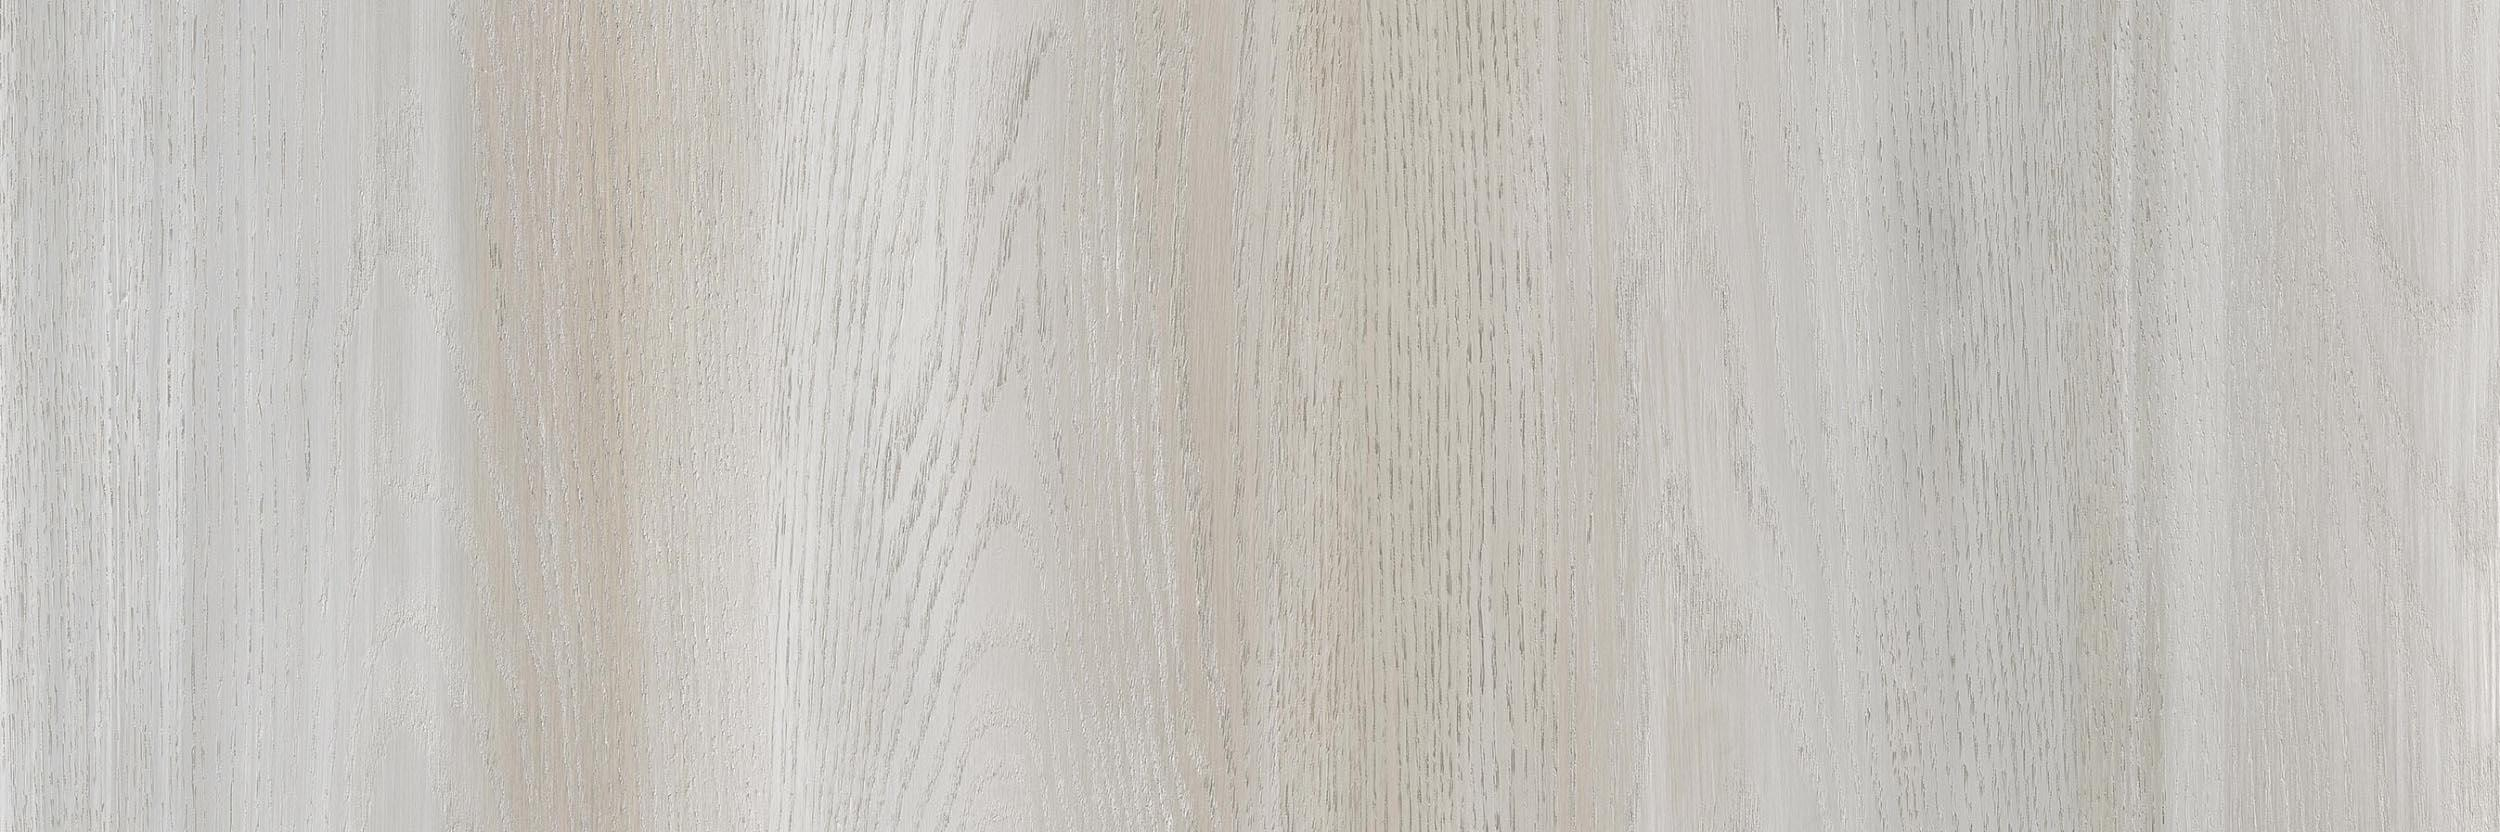 Calming Oak Y0779 Laminate Countertops